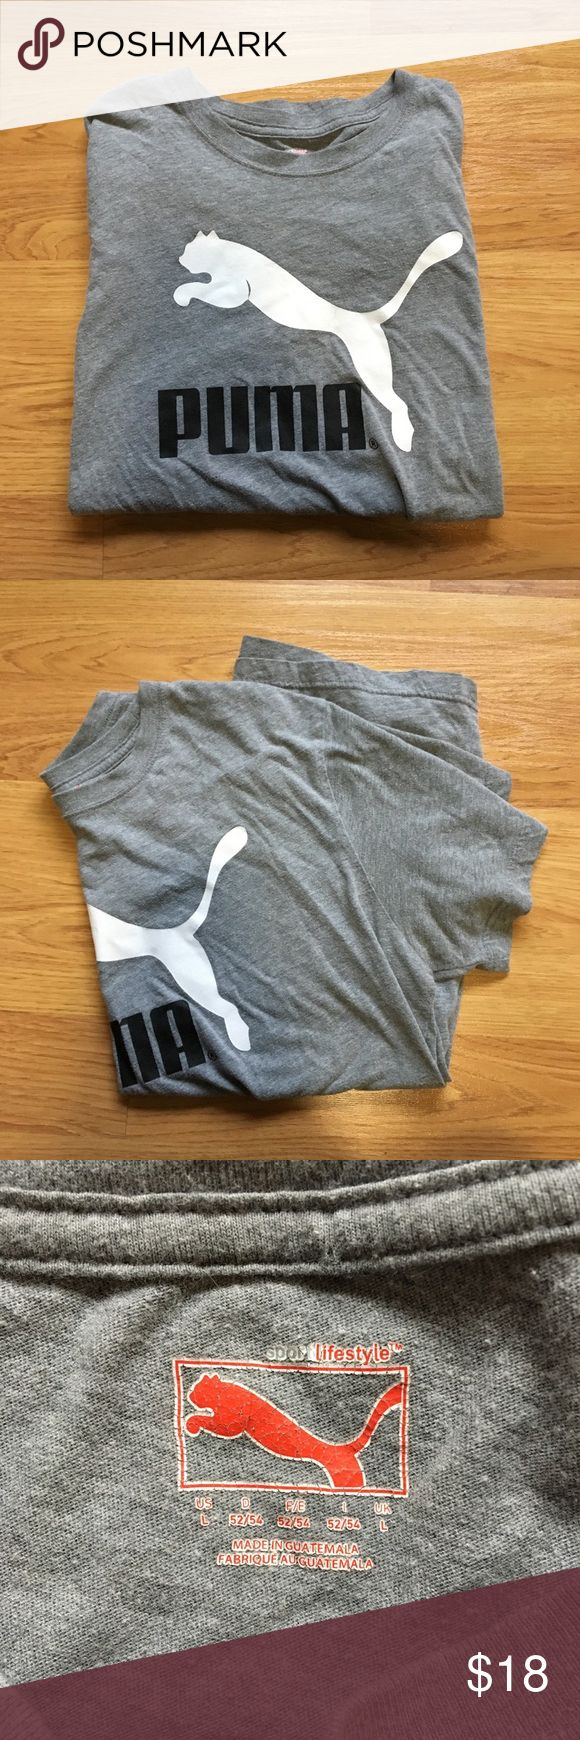 unisex GRAY PUMA T SHIRT SIZE LARGE LARGE. IN AMAZING CONDITION. BIG LOGO ON THE FRONT. SHORT SLEEVE. GRAY. Message me questions!  MAKE OFFERS! Puma Shirts Tees - Short Sleeve